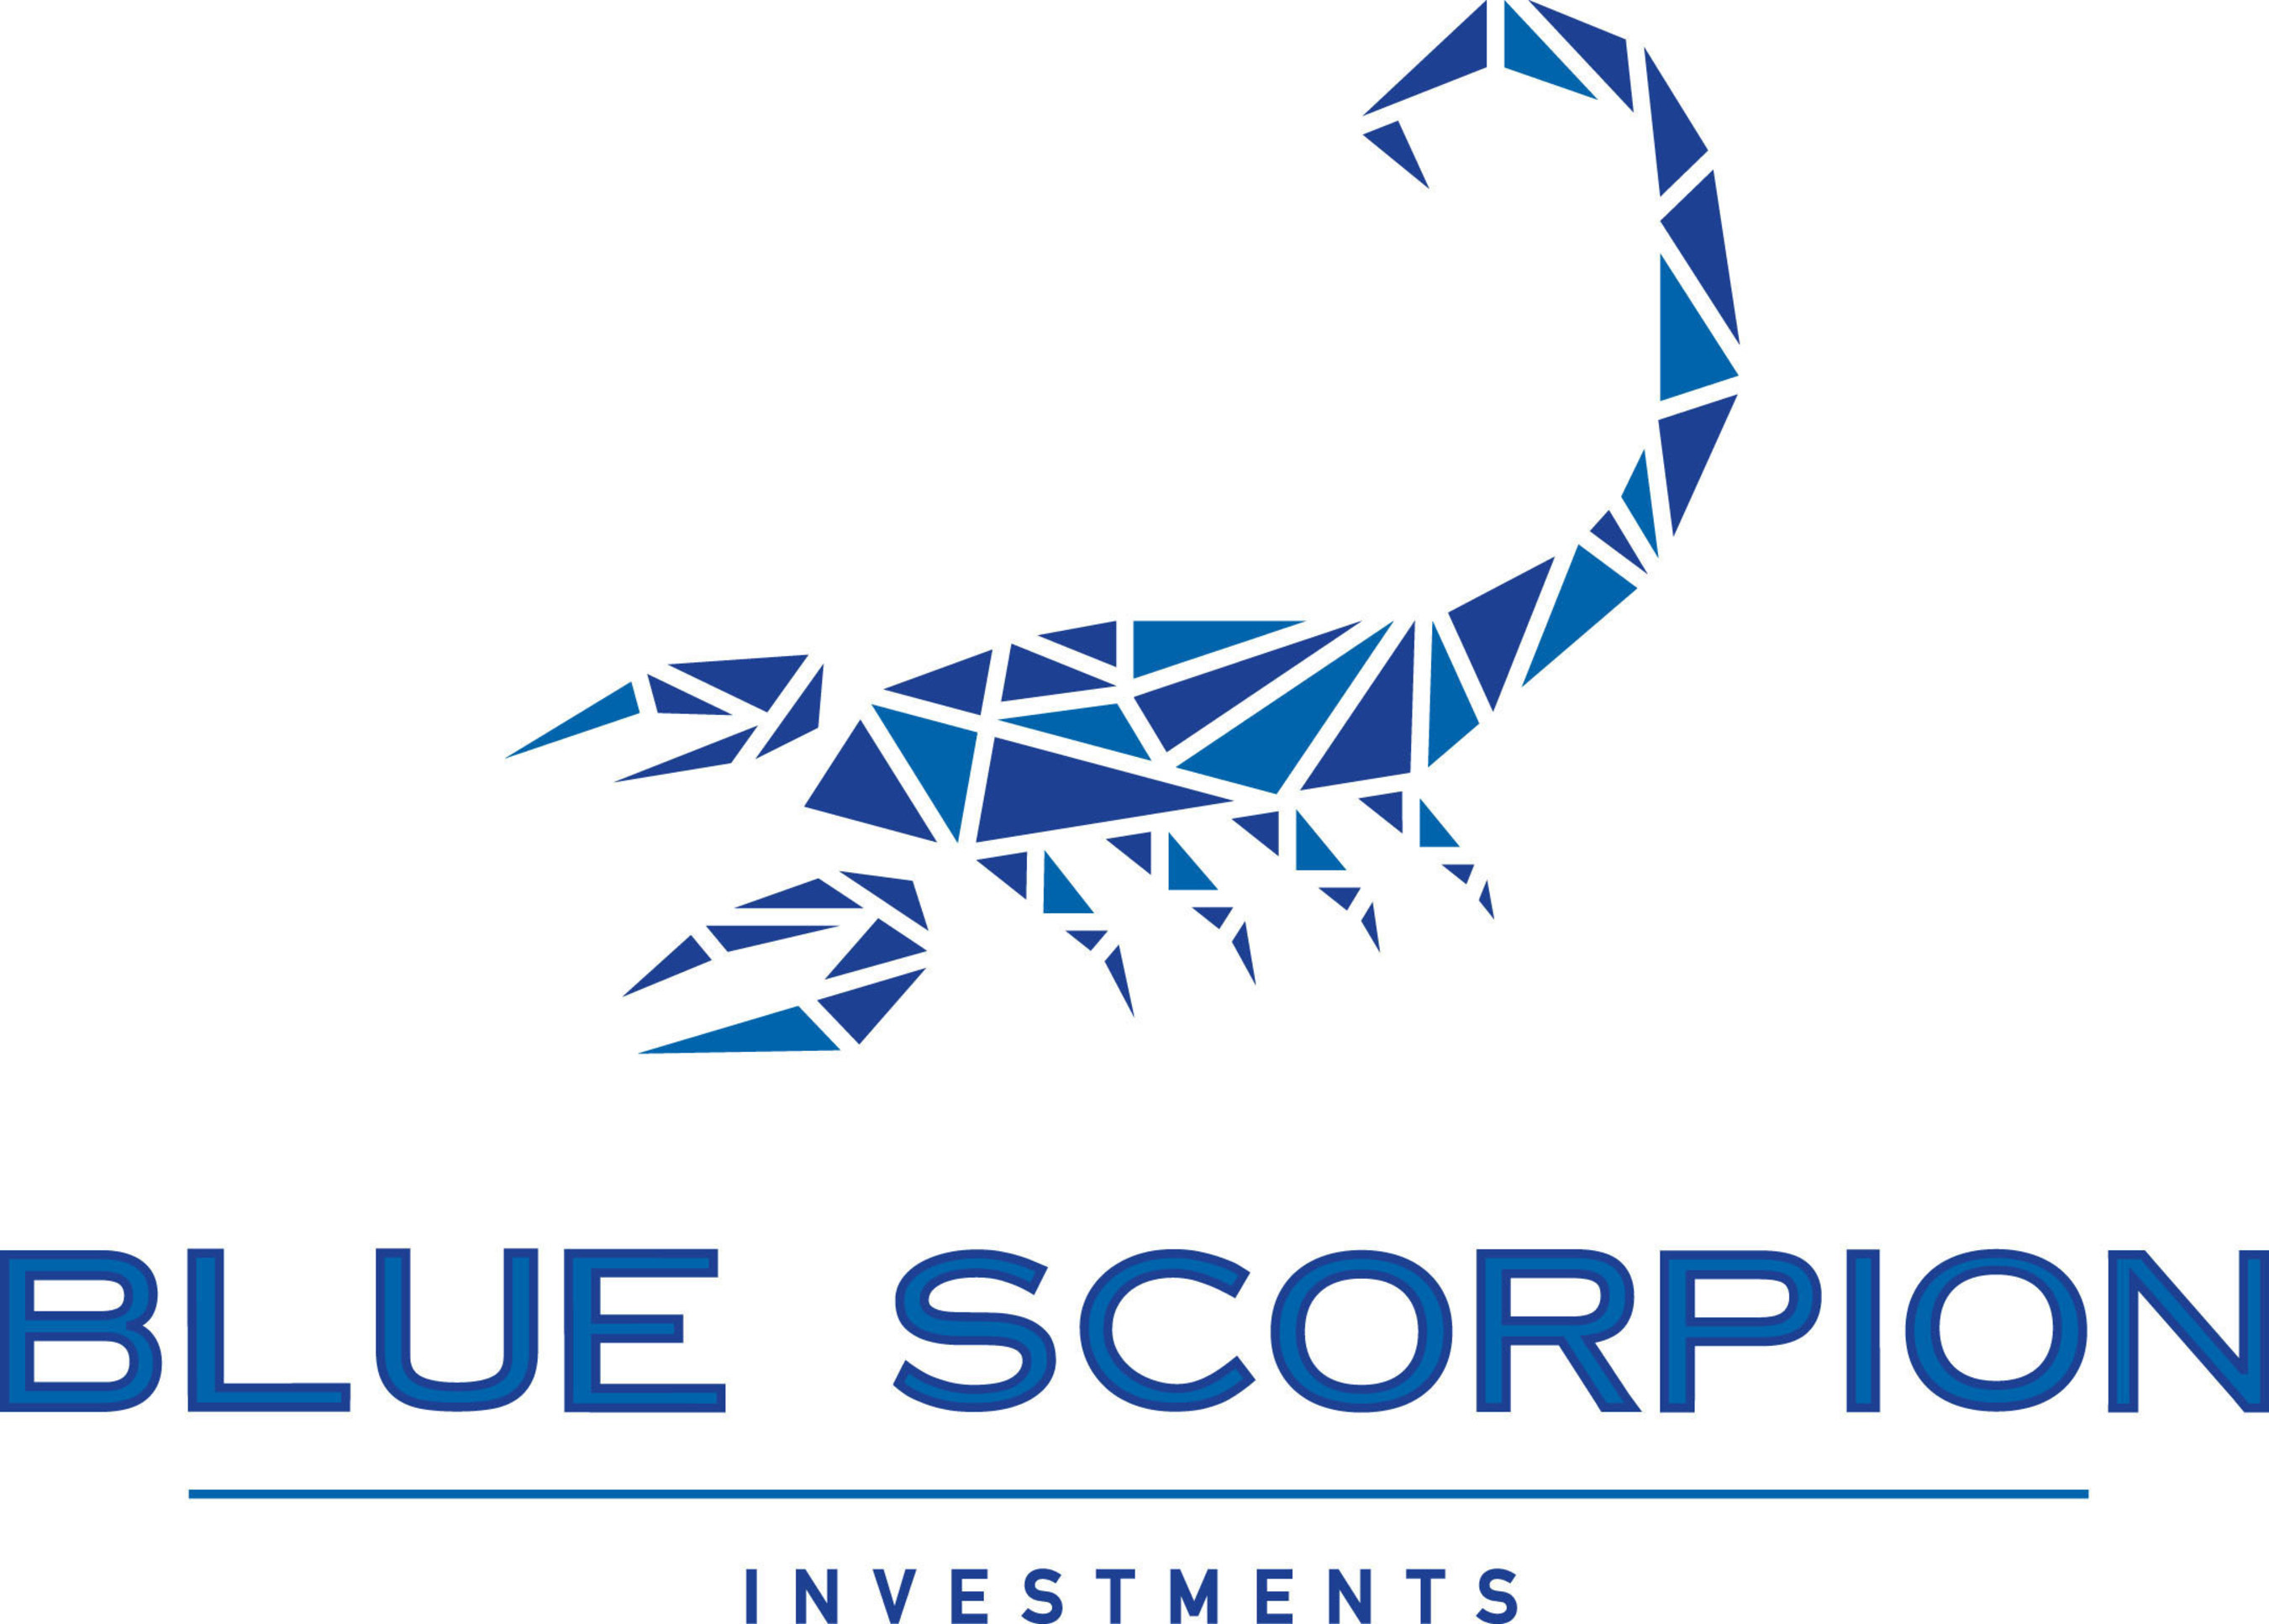 Blue Scorpion Investments Announces First Equity Investment into The